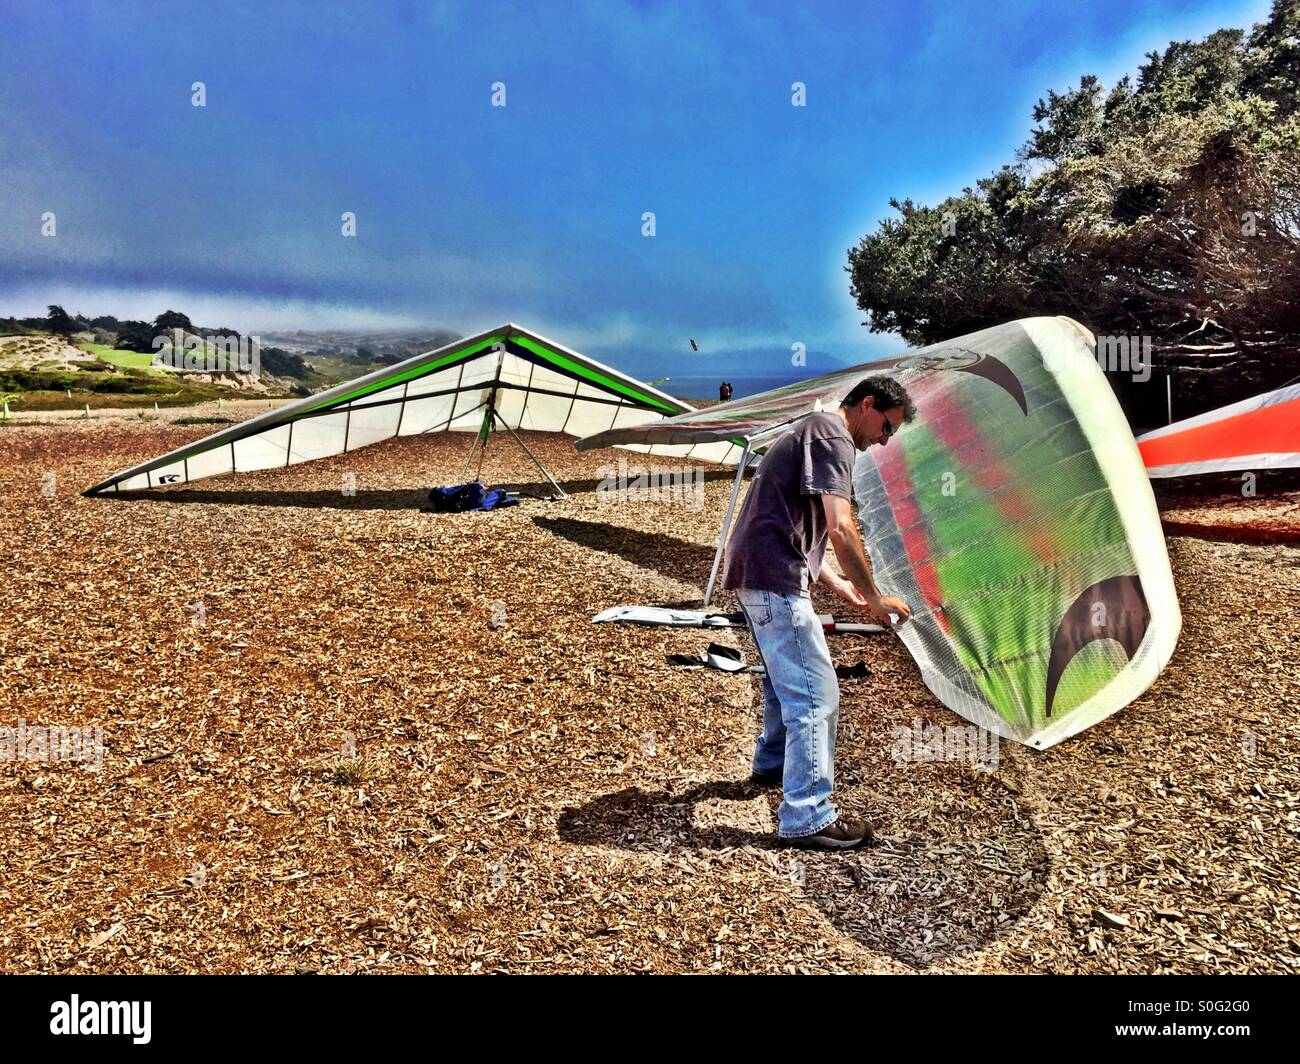 Hang gliding preflight check before takeoff atop the high sandy Fort Funston cliffs in San Francisco, California, - Stock Image